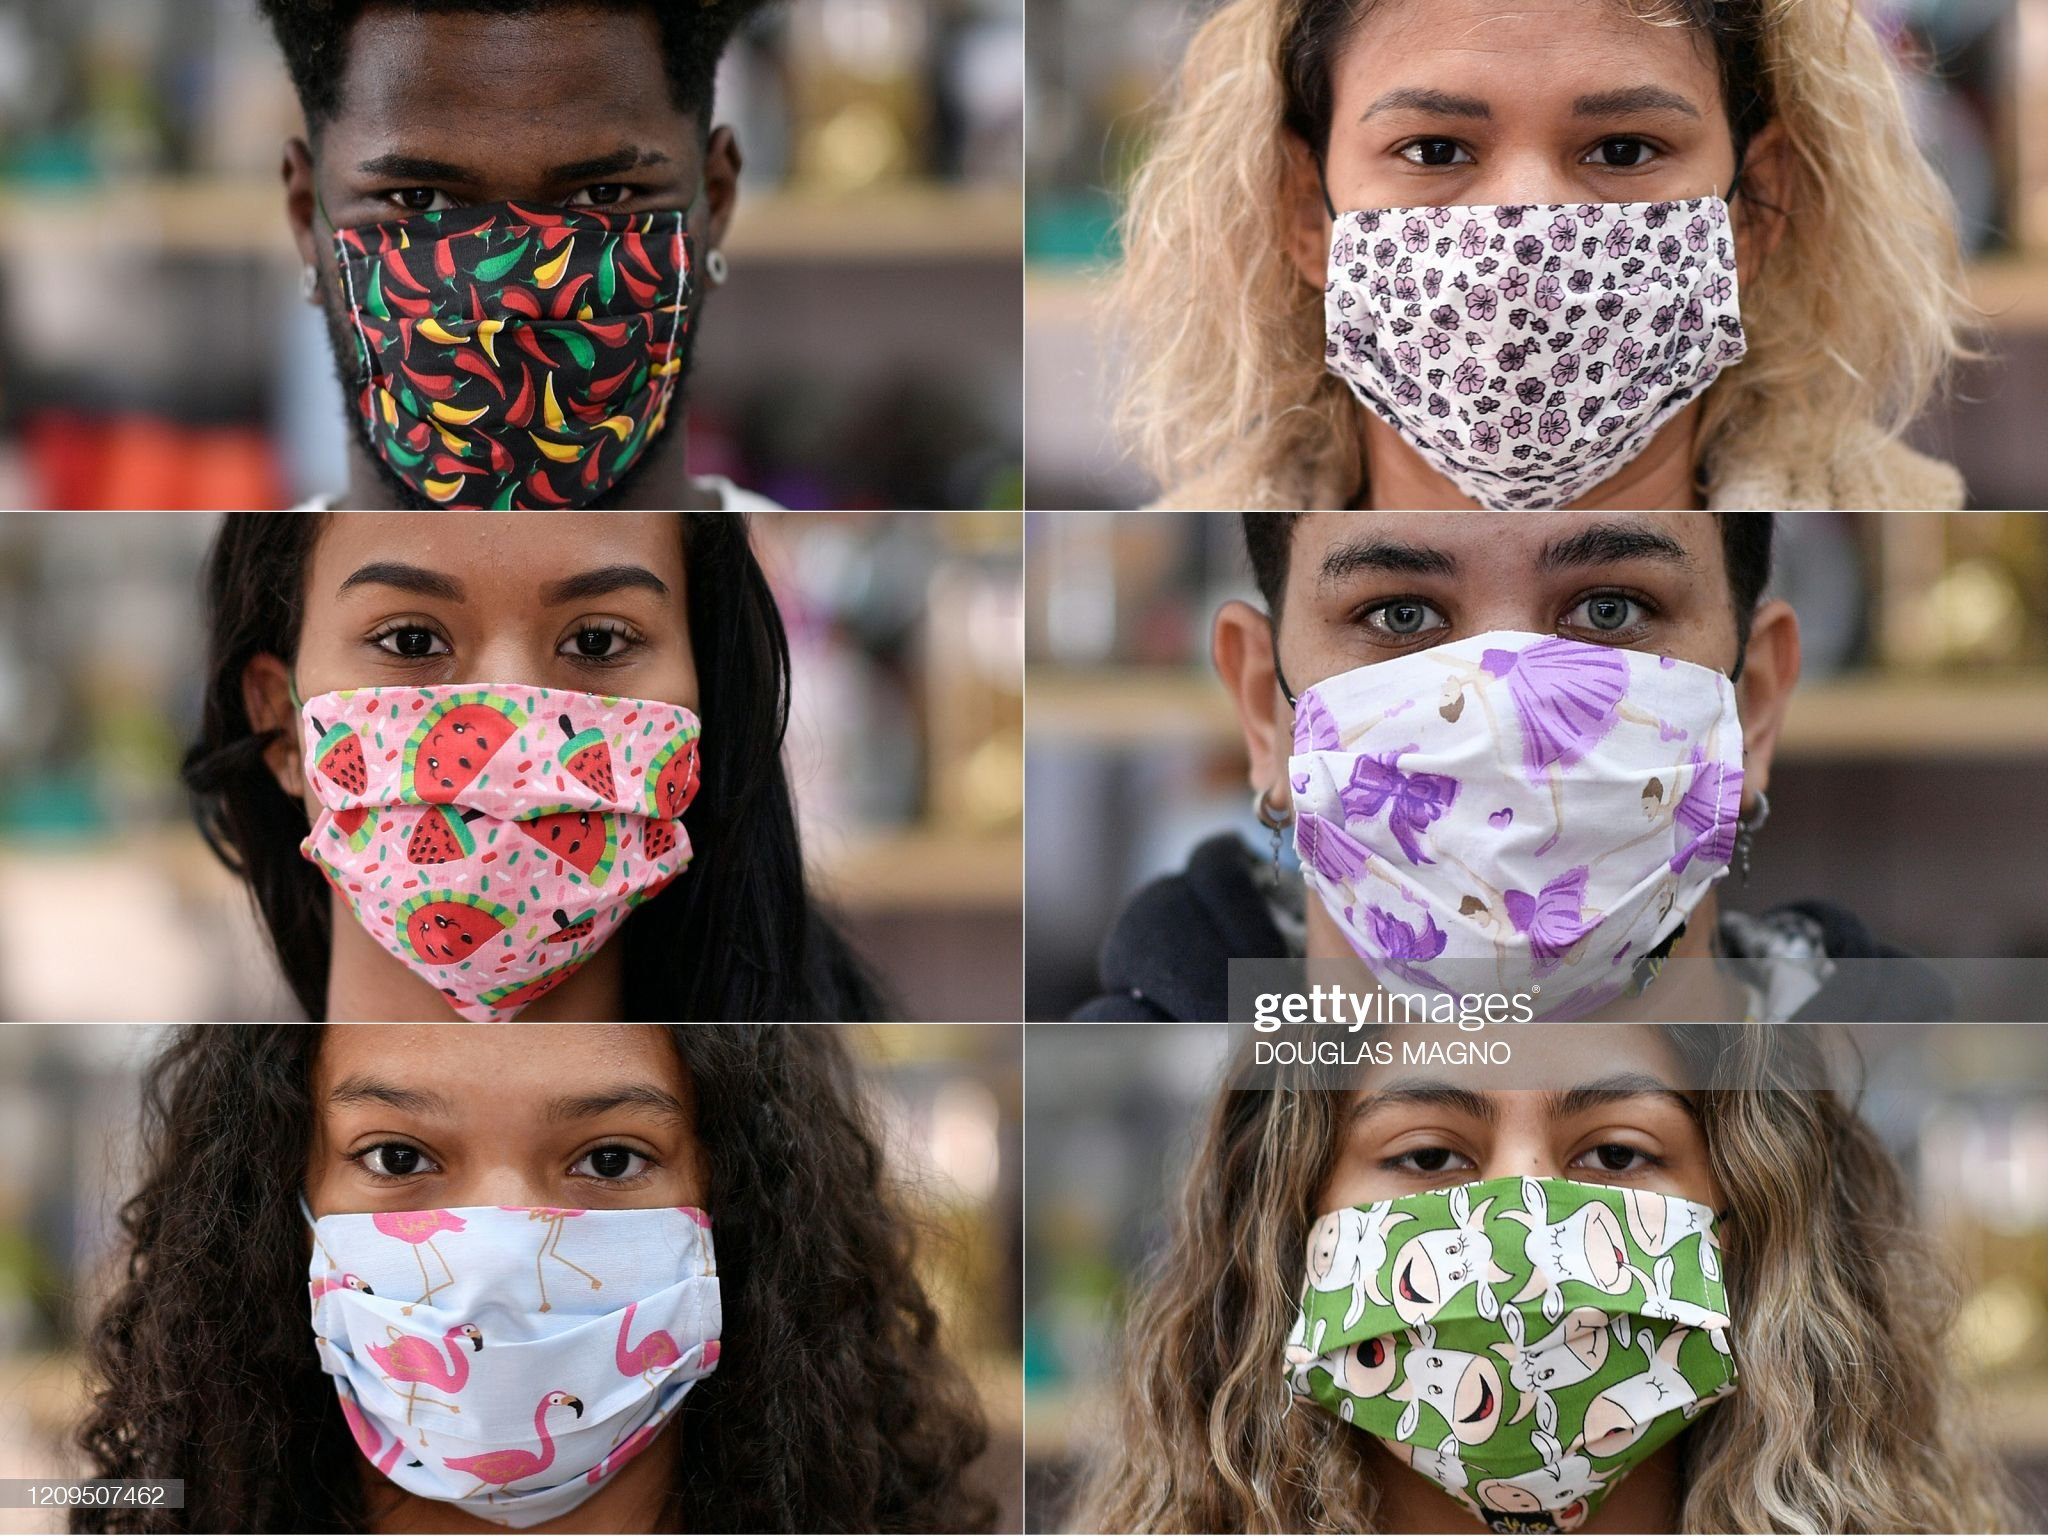 Mixed grid of six people wearing colorful masks